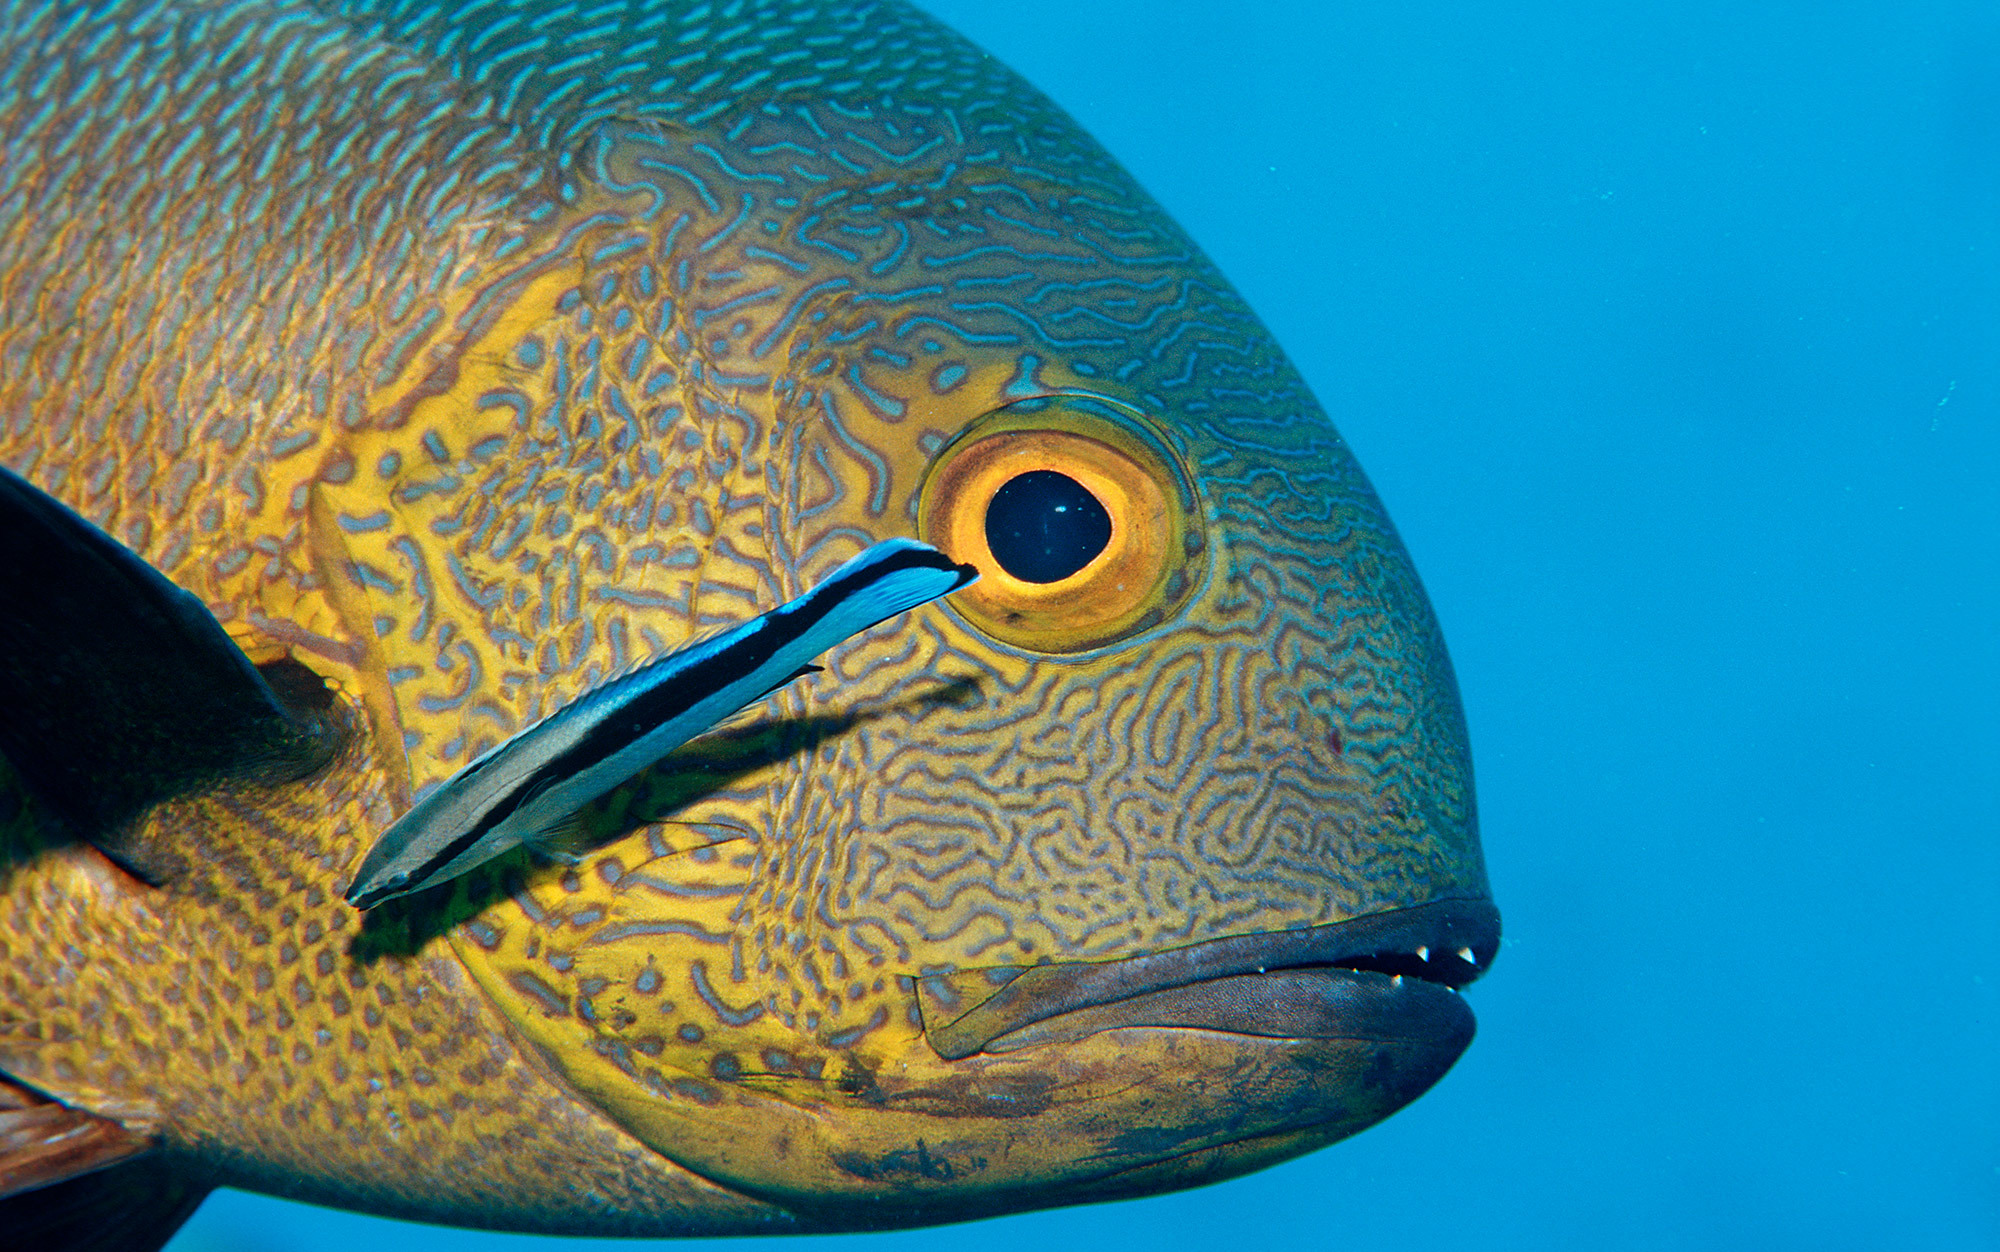 The face of the fish   Aeon